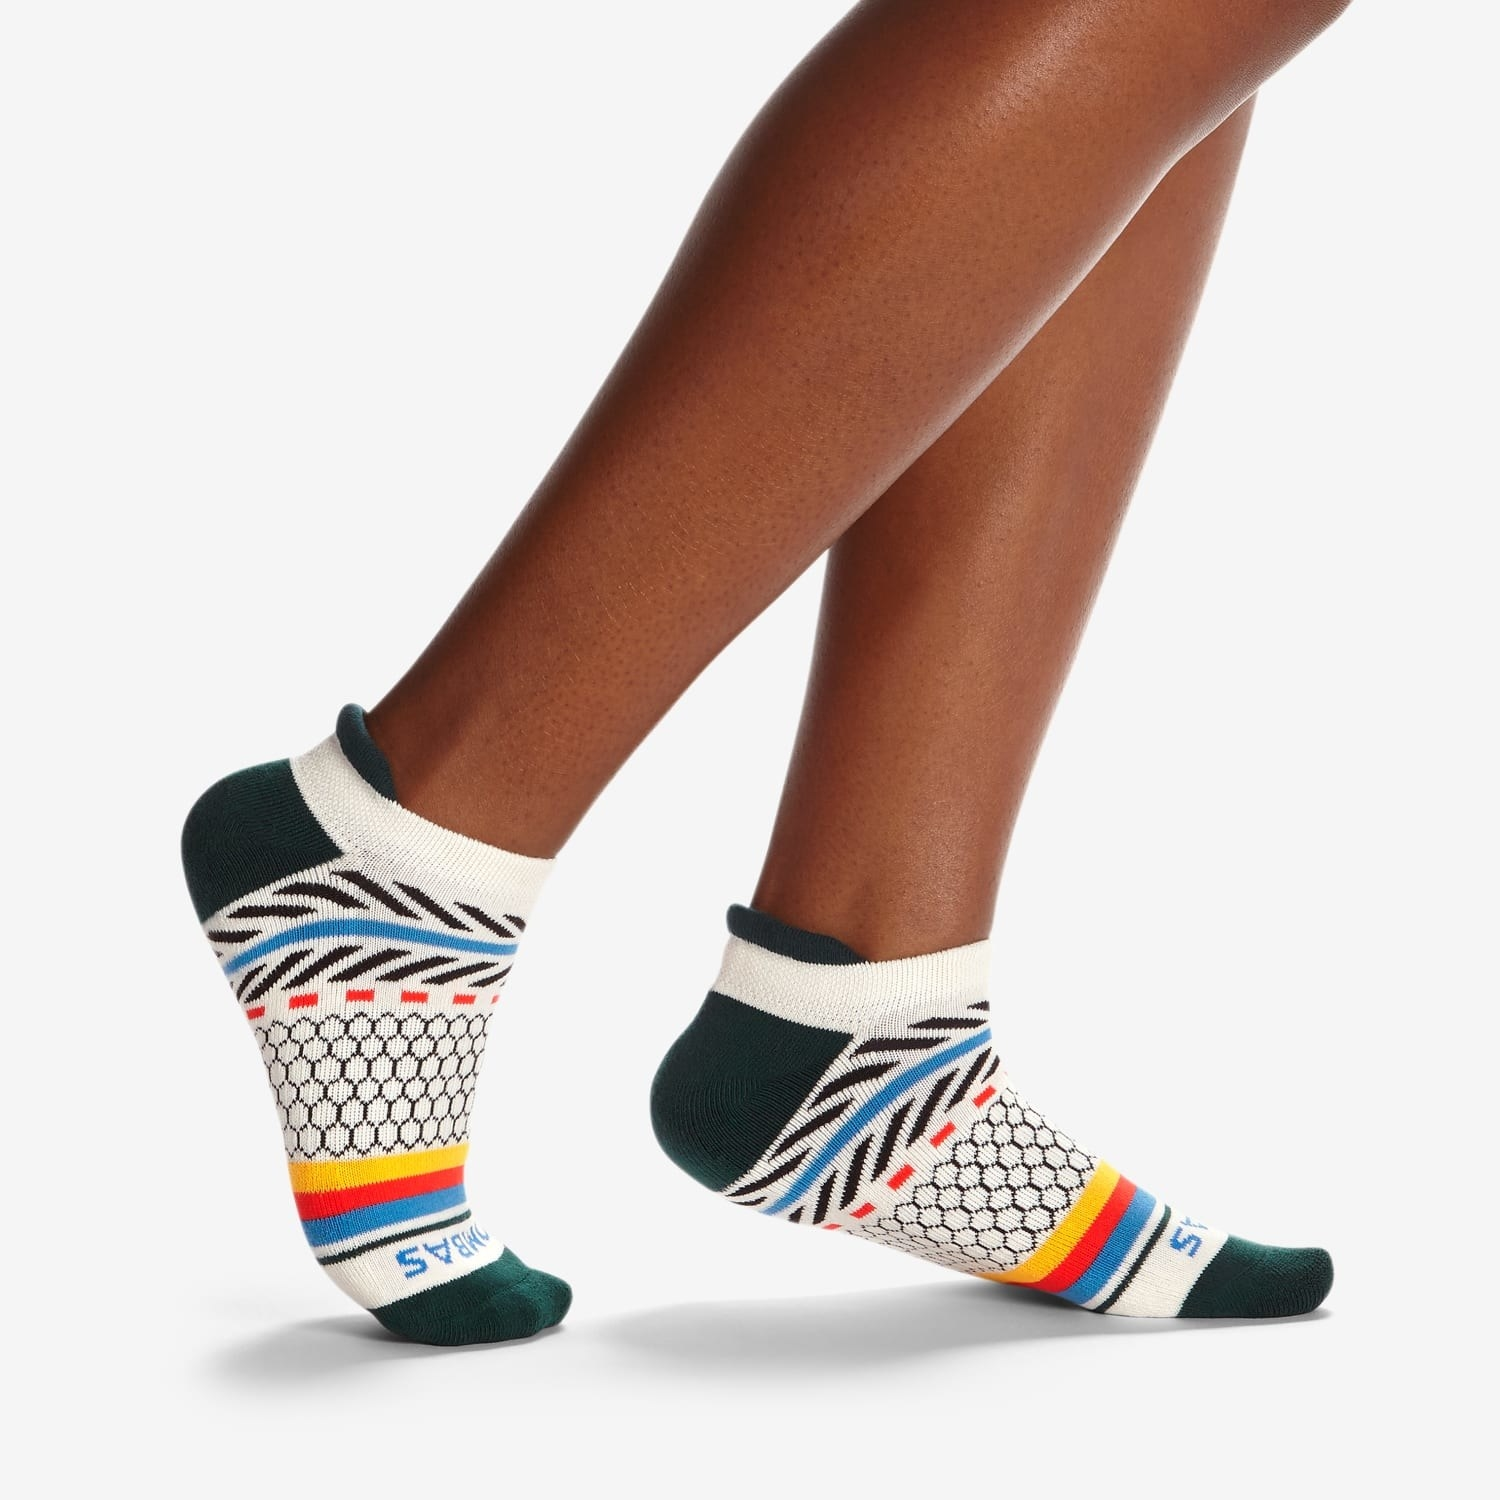 A model's feet in white socks with green toes and heel, a navy, blue, and red pattern around the back of the foot, and a yellow, red, and blue pattern around the mid-foot